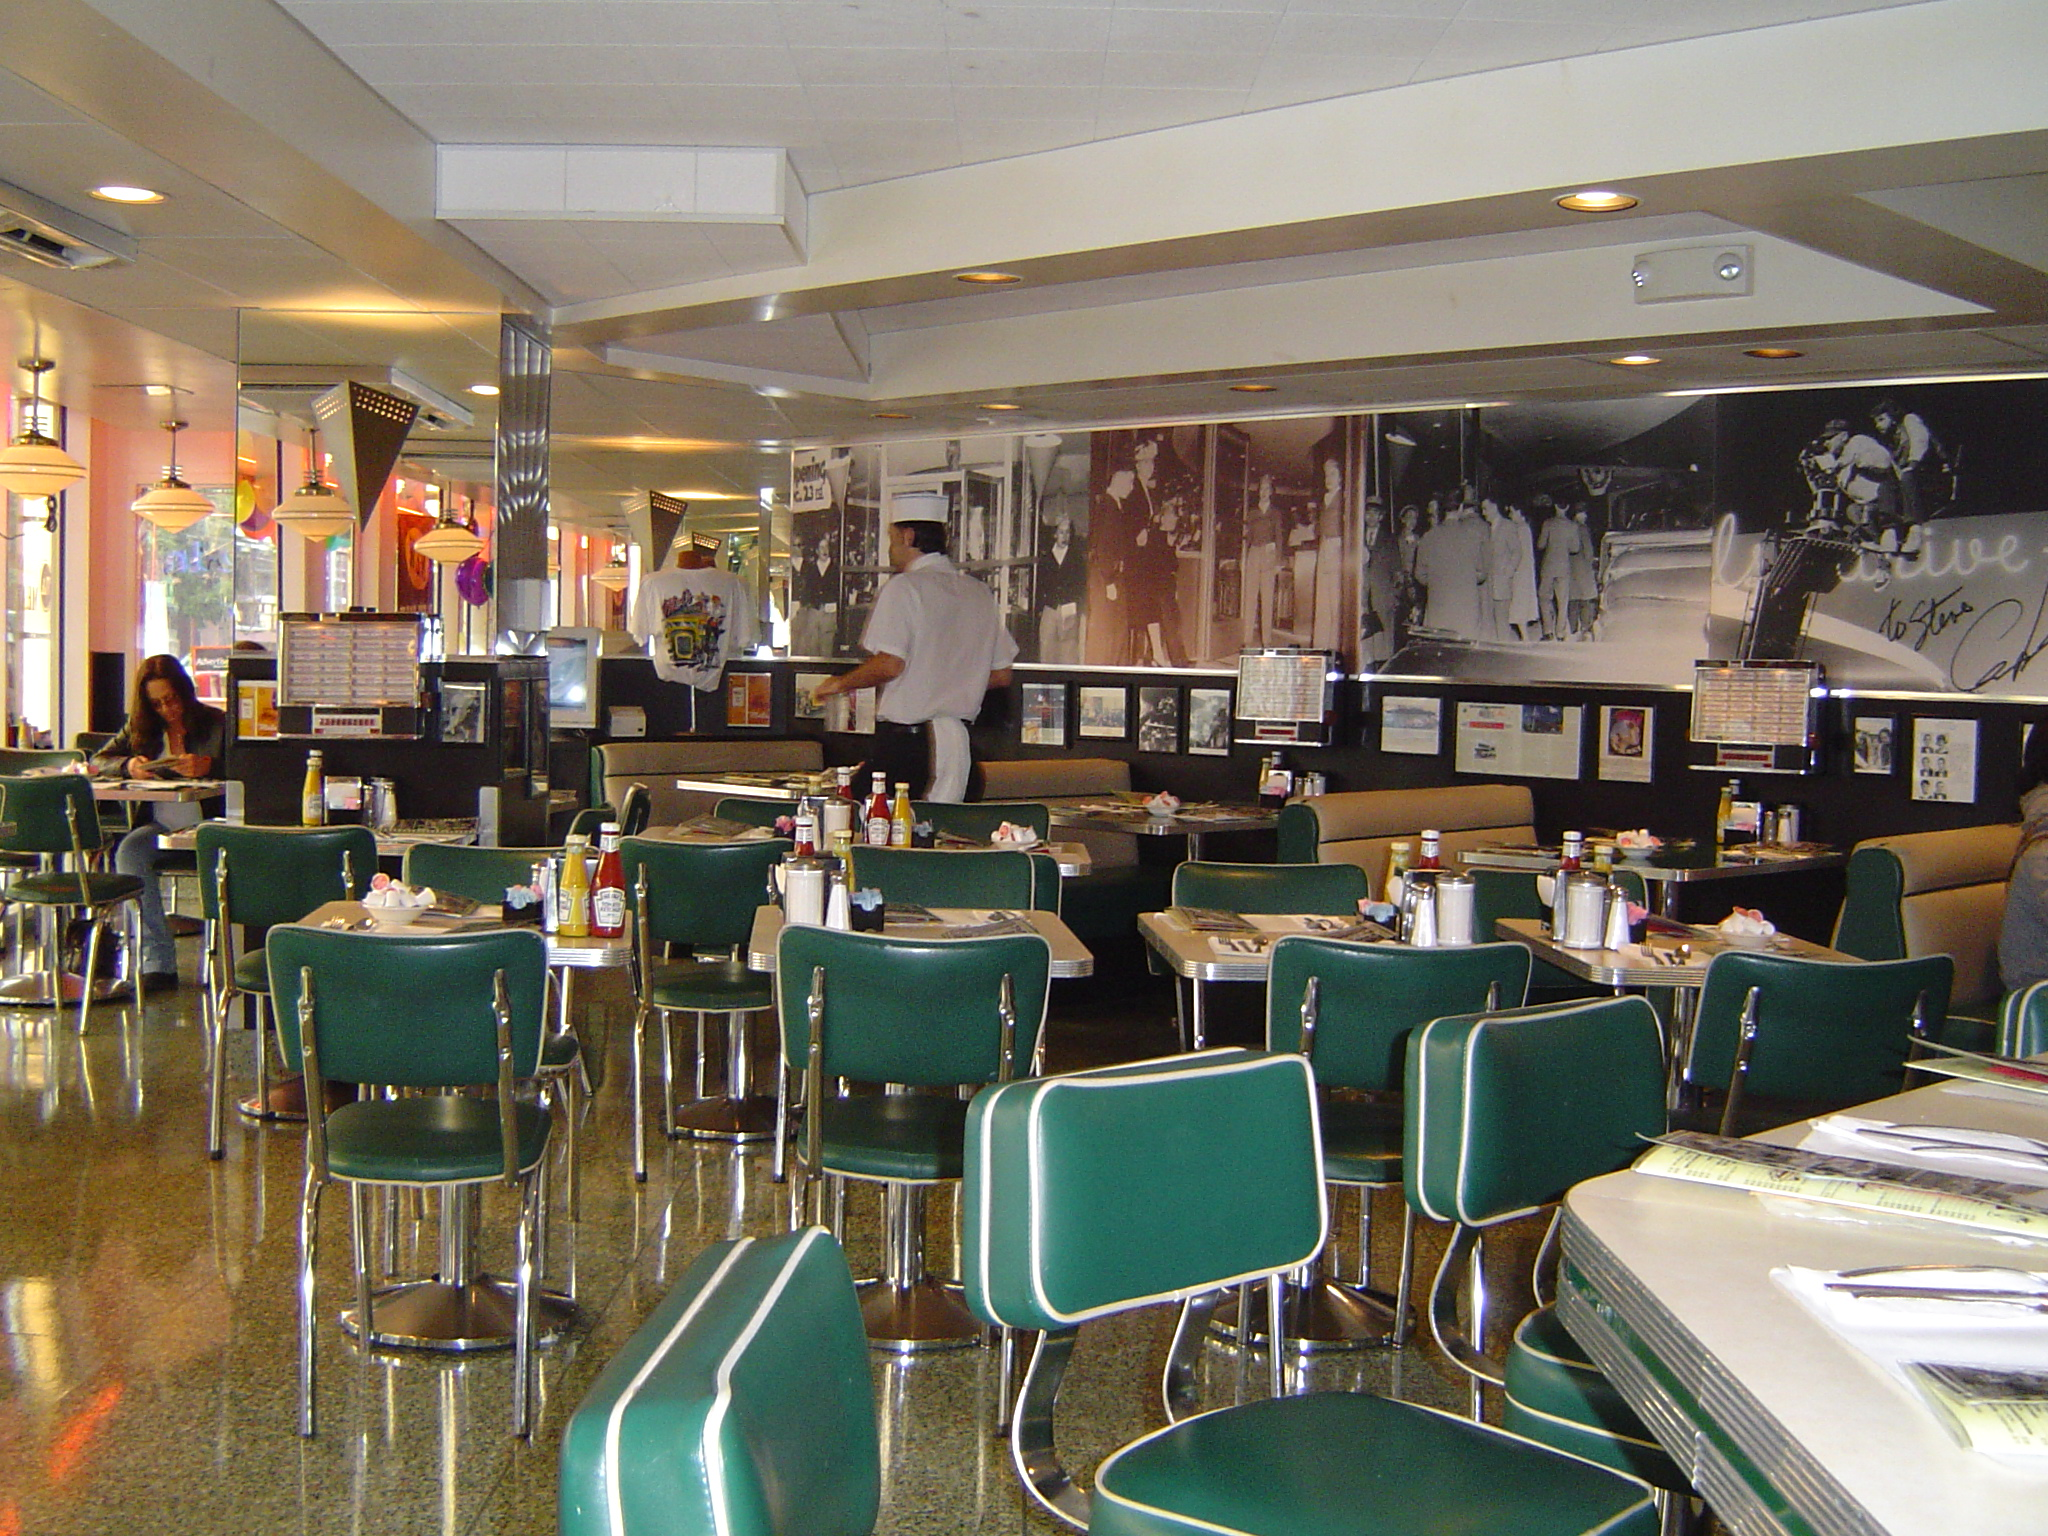 Free stock photo 839 american diner freeimageslive for Diner interior